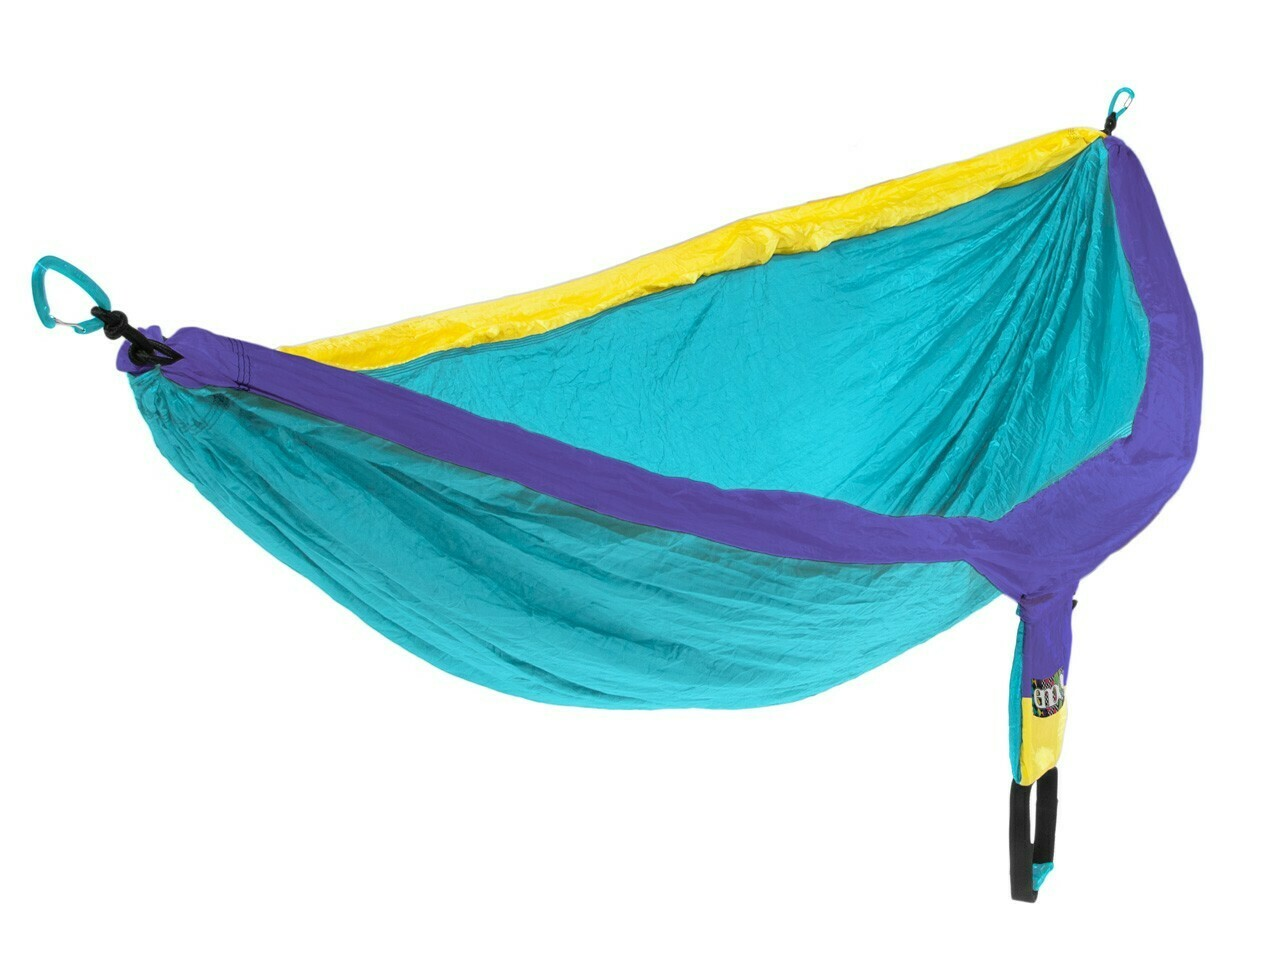 Eno DoubleNest Hammock Retro Tri Version 2